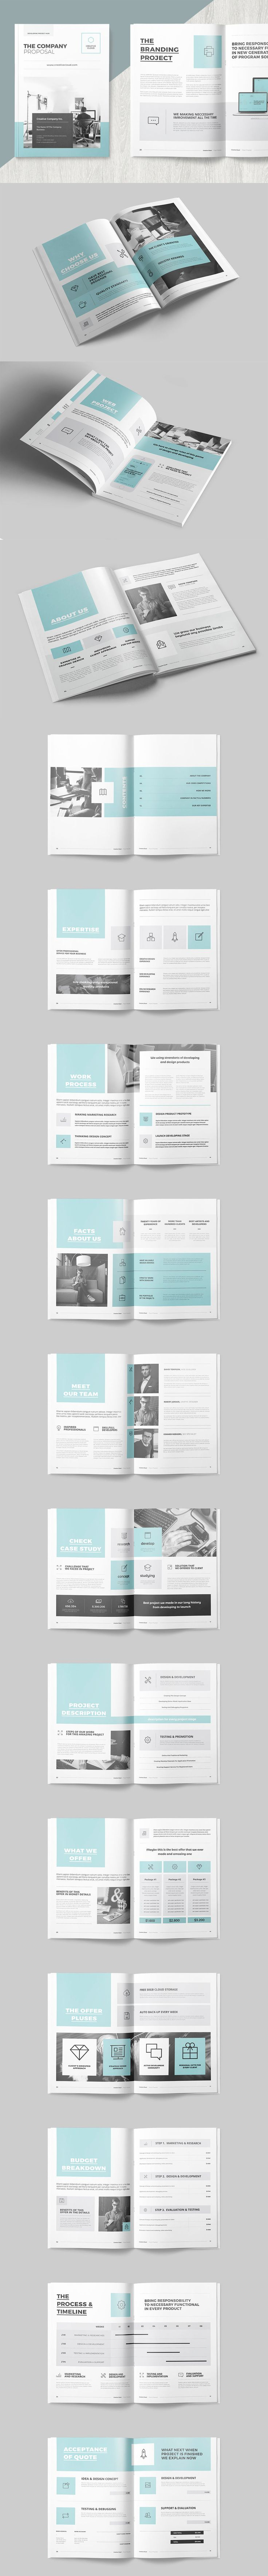 Clean and Professional Proposal Design Template InDesign INDD - 40 Pages, A4 International And Us Letter Size